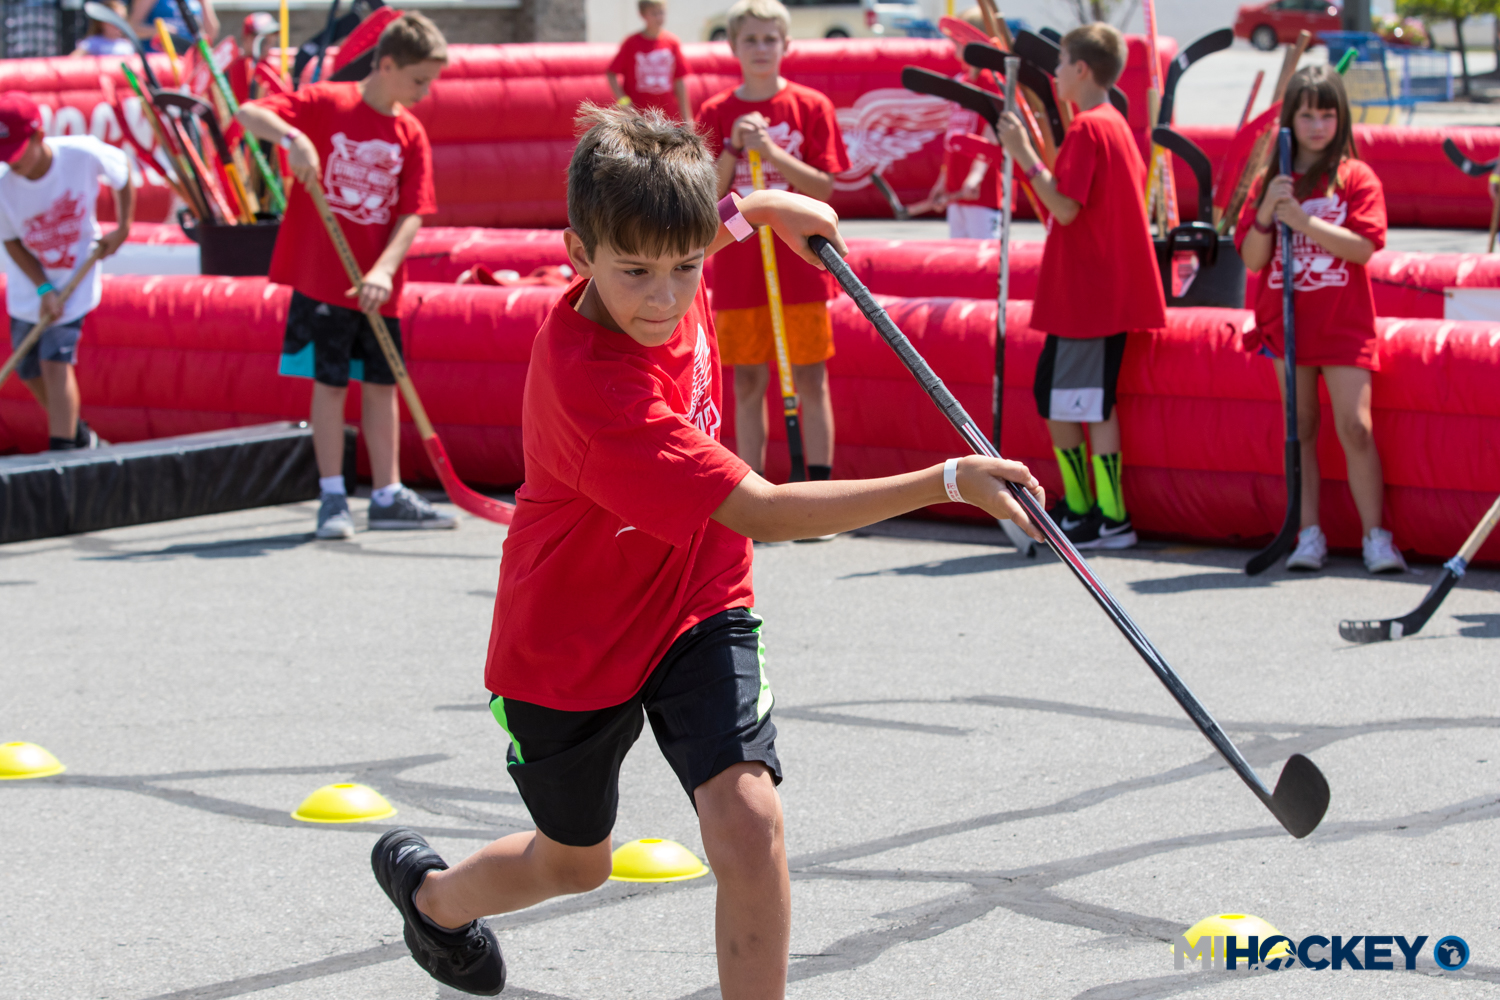 Red Wings announce third annual Street Hockey Summer Tour at Meijer locations across Michigan